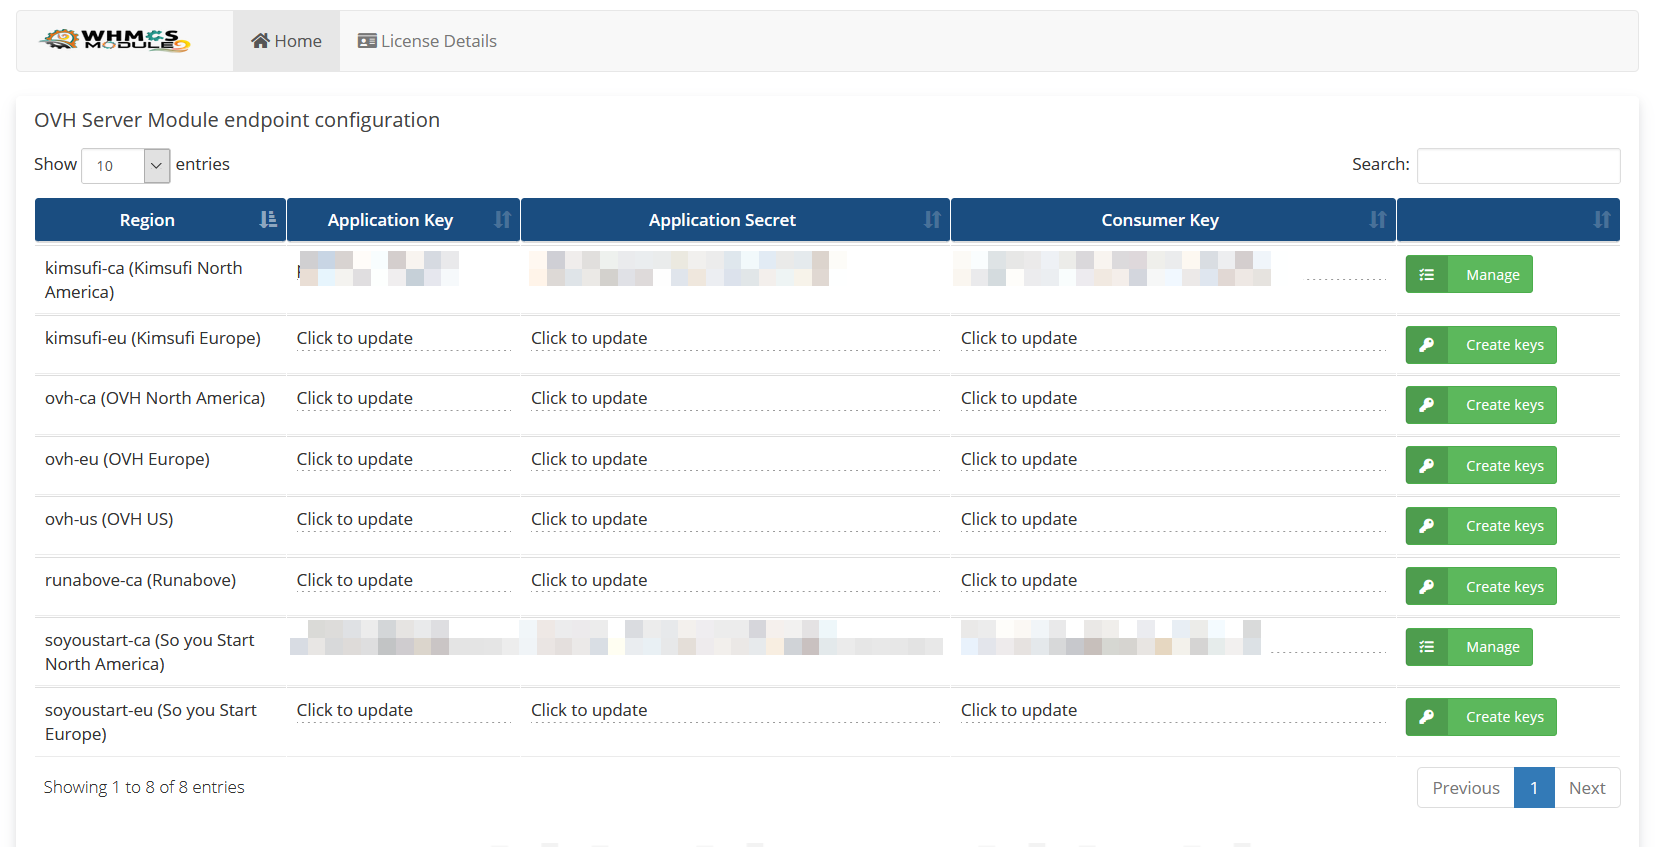 Openstack Cloud Automation WHMCS Module